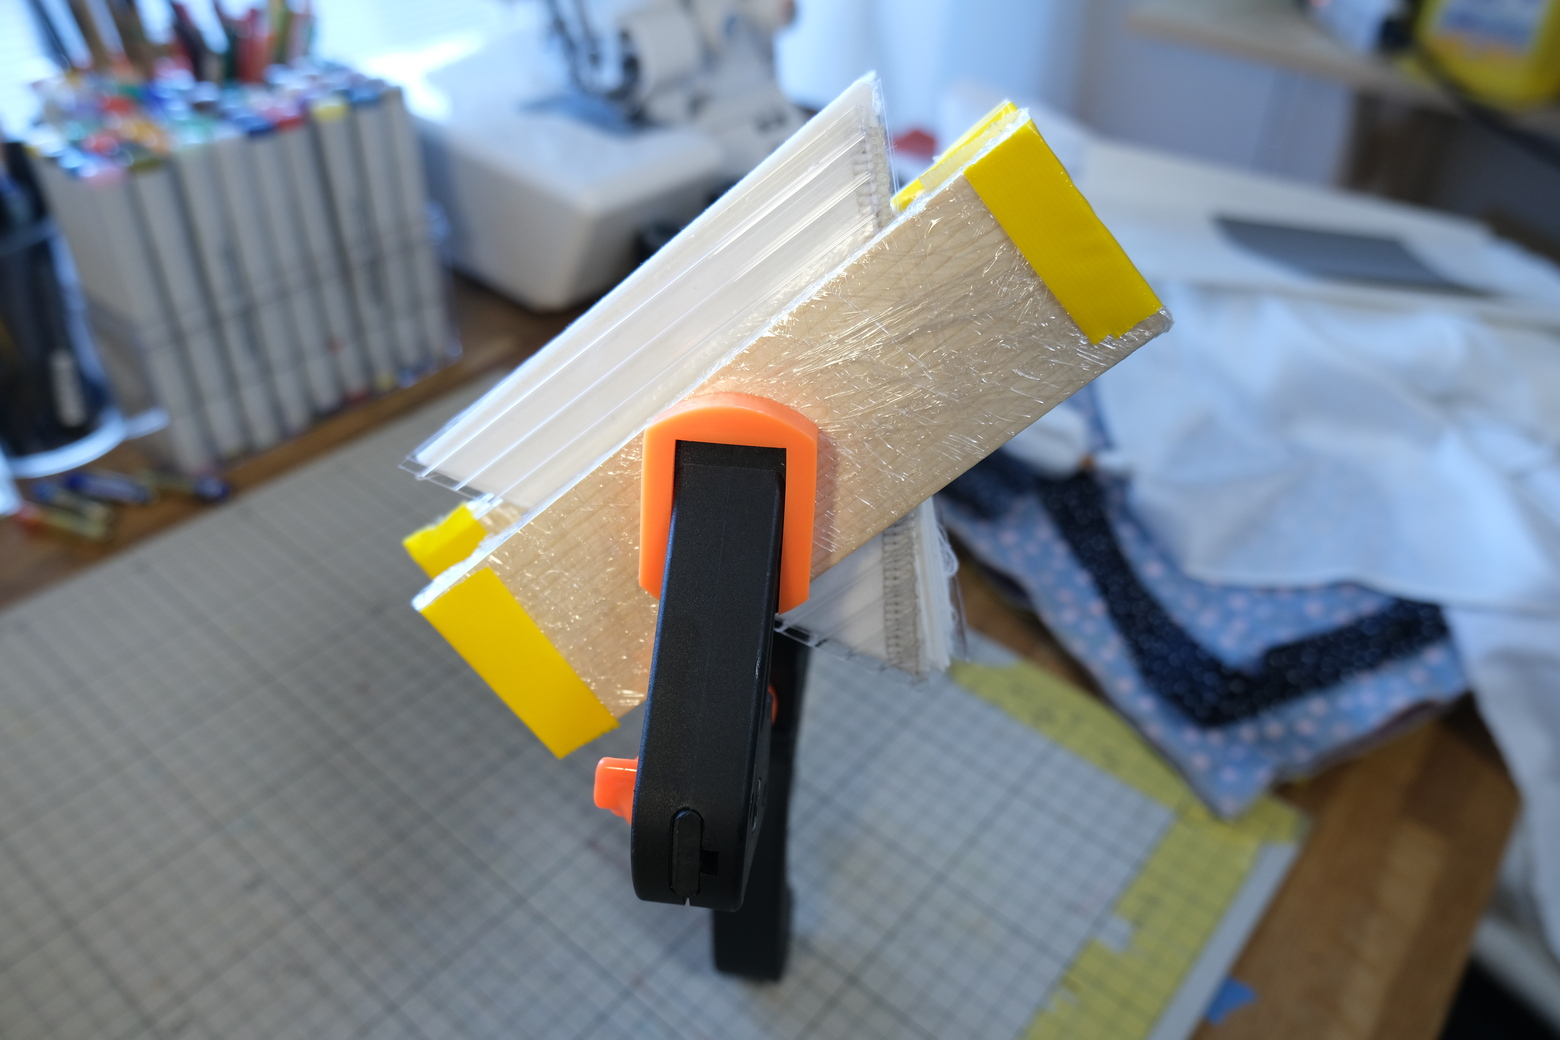 fabric clamped between pieces of wood